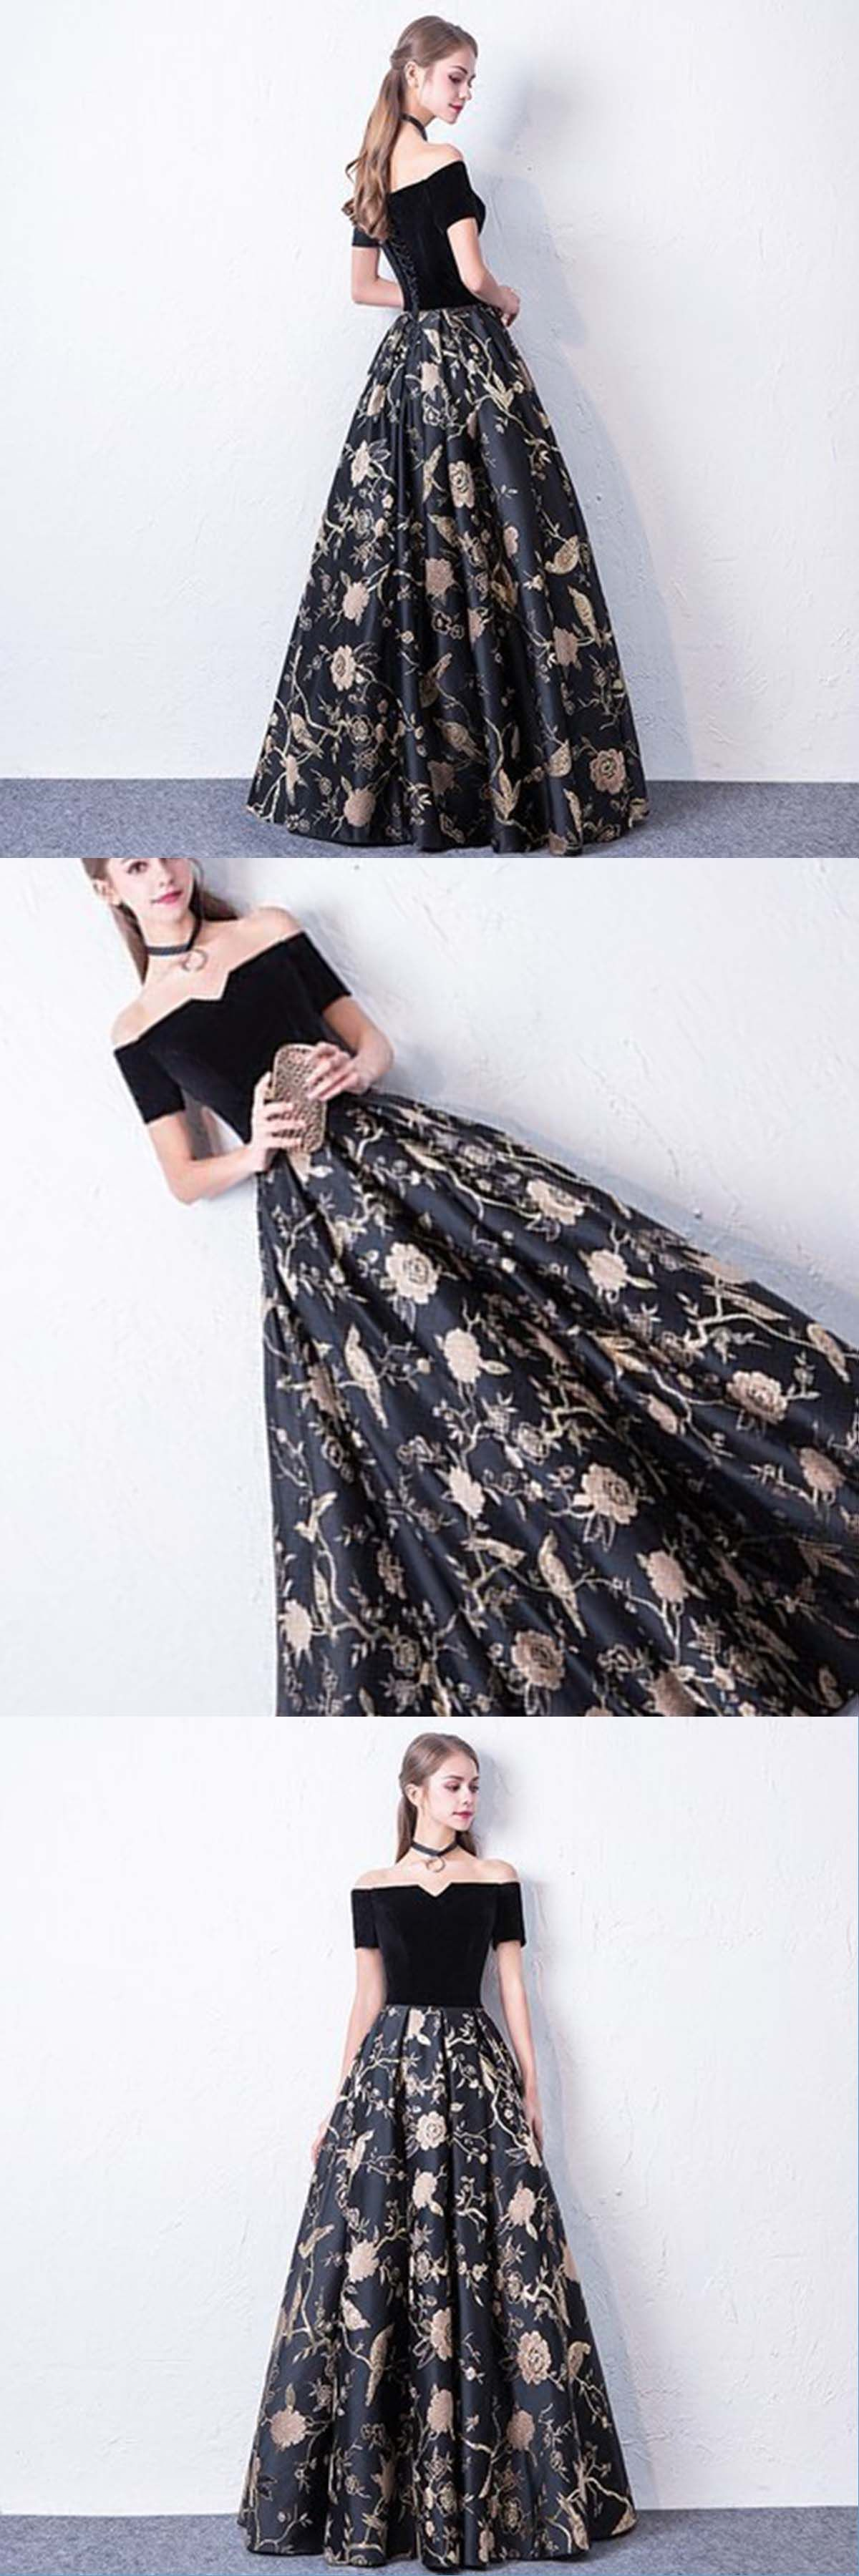 Off shoulder prom dress elegant floral satin evening gown senior